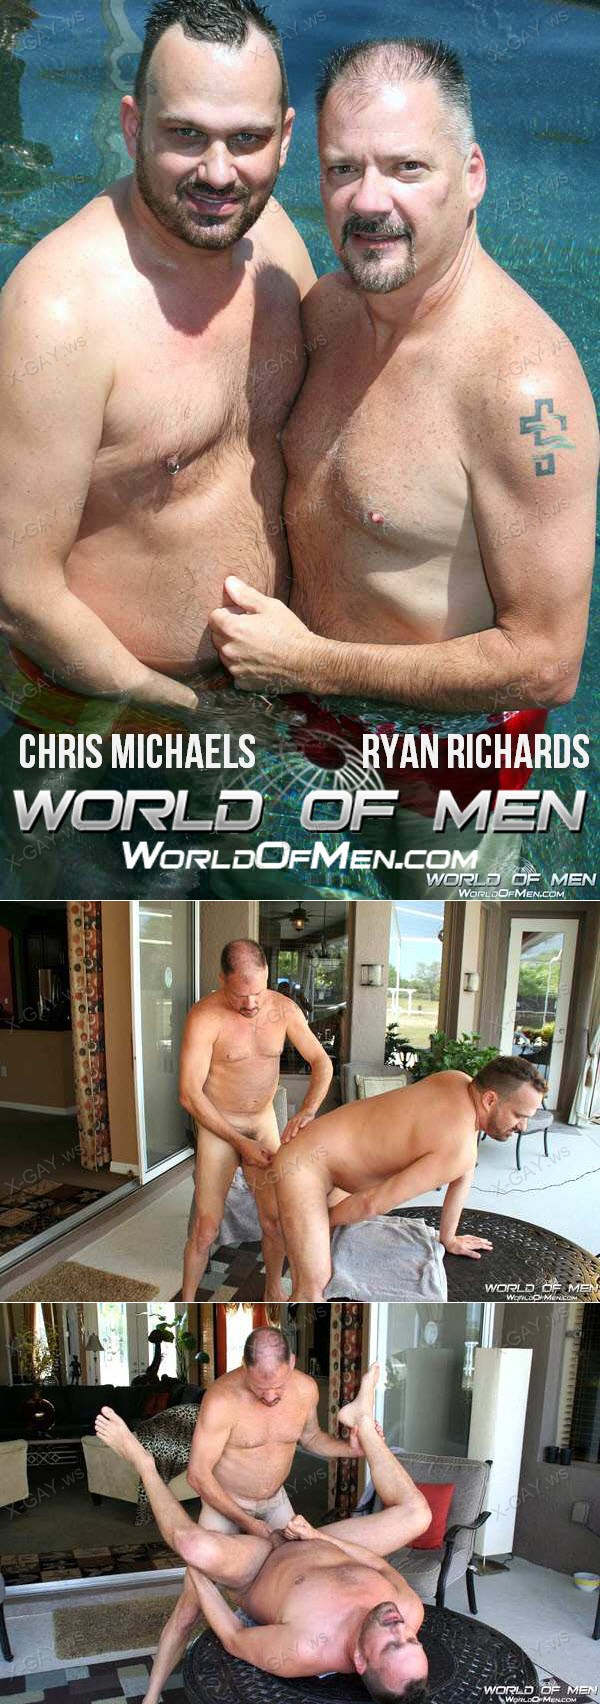 worldofmen_chrismichaels_ryanrichards.jpg